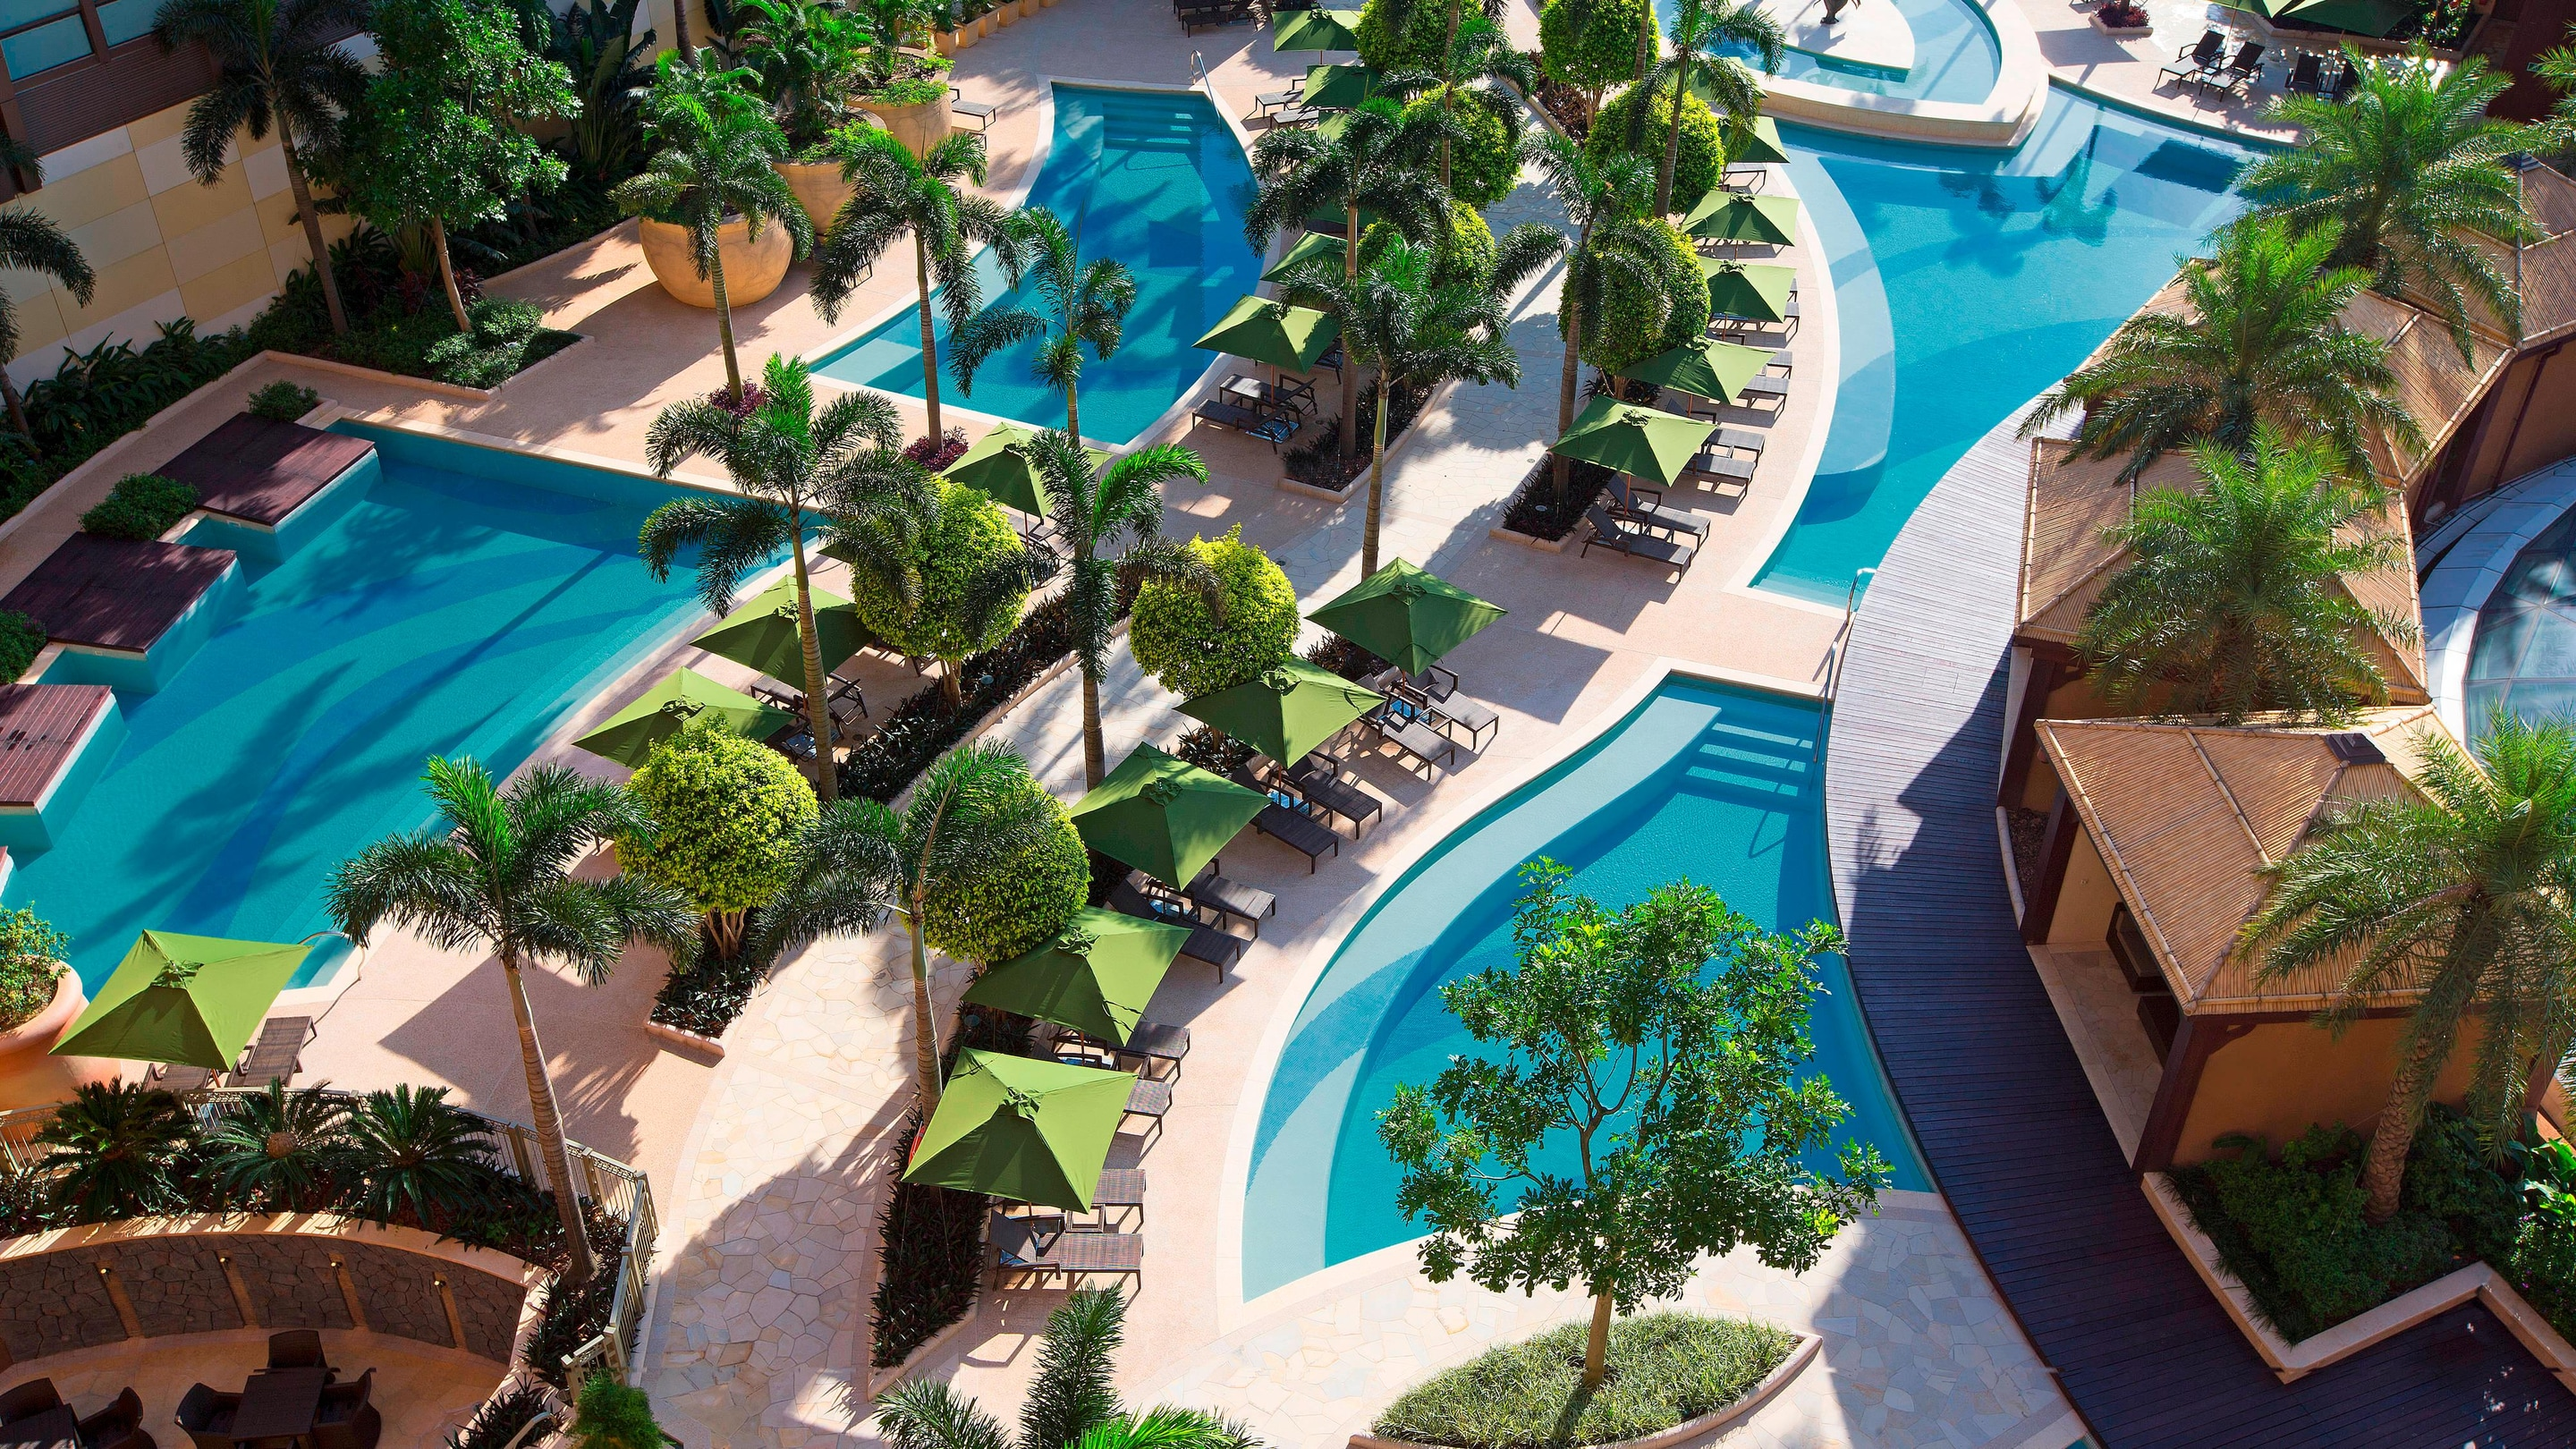 Aerial view of swimming pools, cabanas and foliage